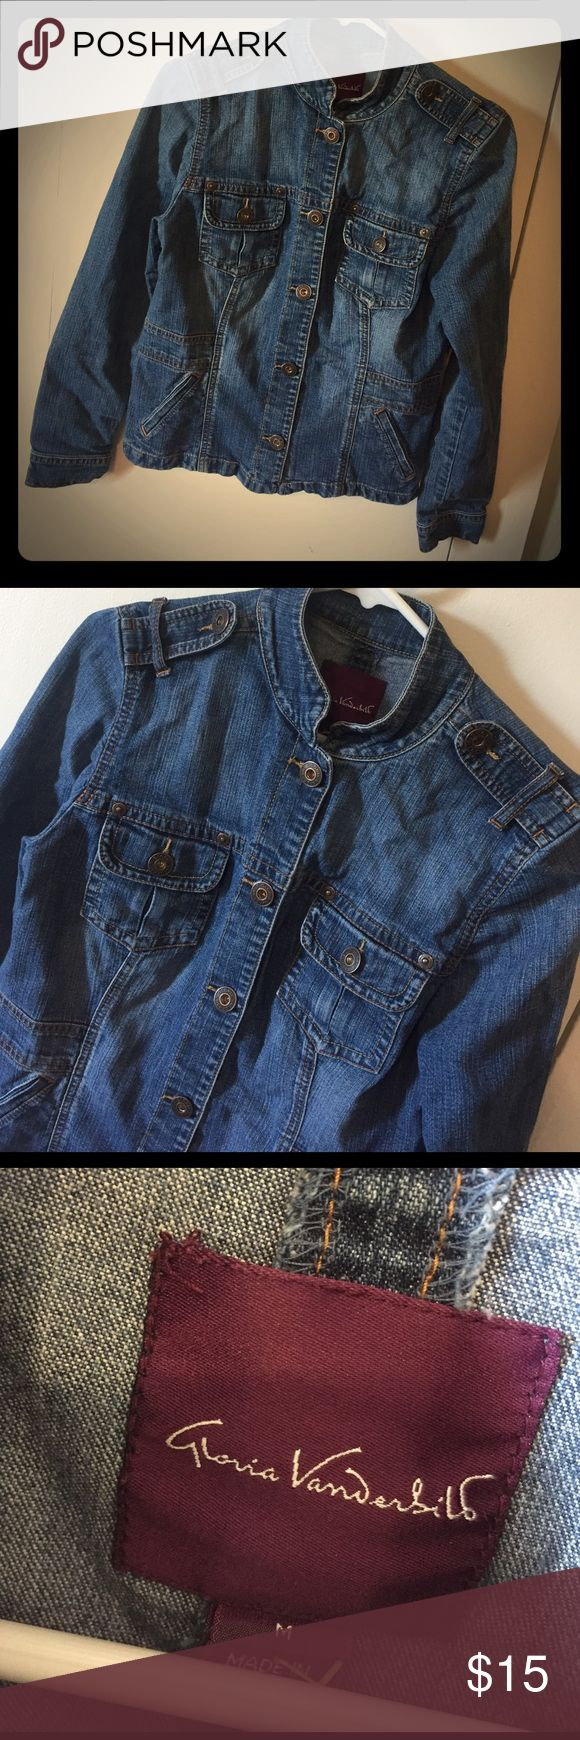 Denim Jacket Awesome jacket for casual wear or to accessorize with that perfect outfit! Sz M, fits like a s/m and no holes or rips Gloria Vanderbilt Jackets & Coats Jean Jackets